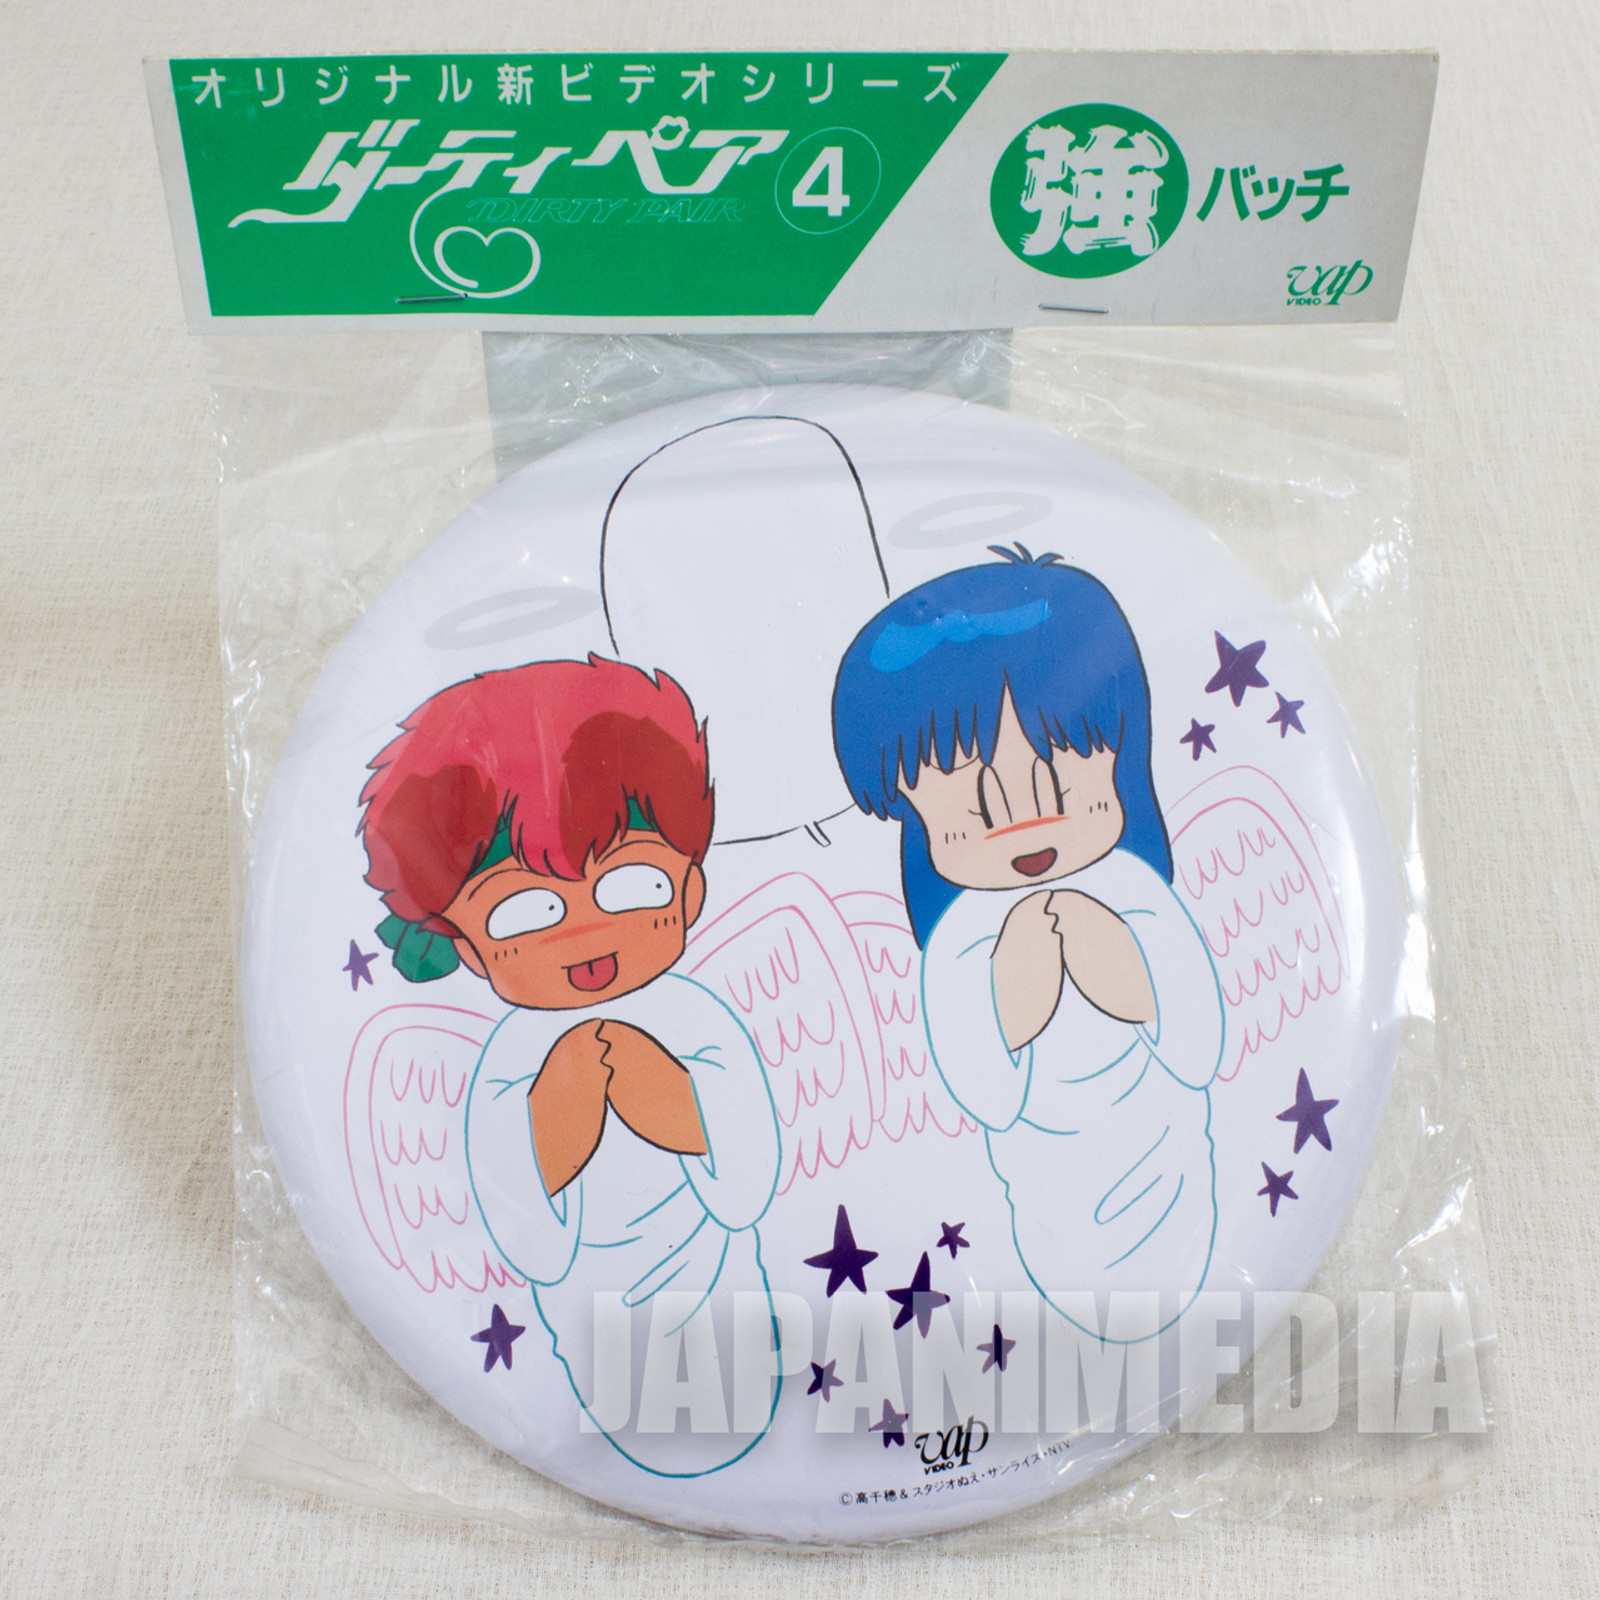 Dirty Pair Kei & Yuri Big size Button badge #4 JAPAN ANIME